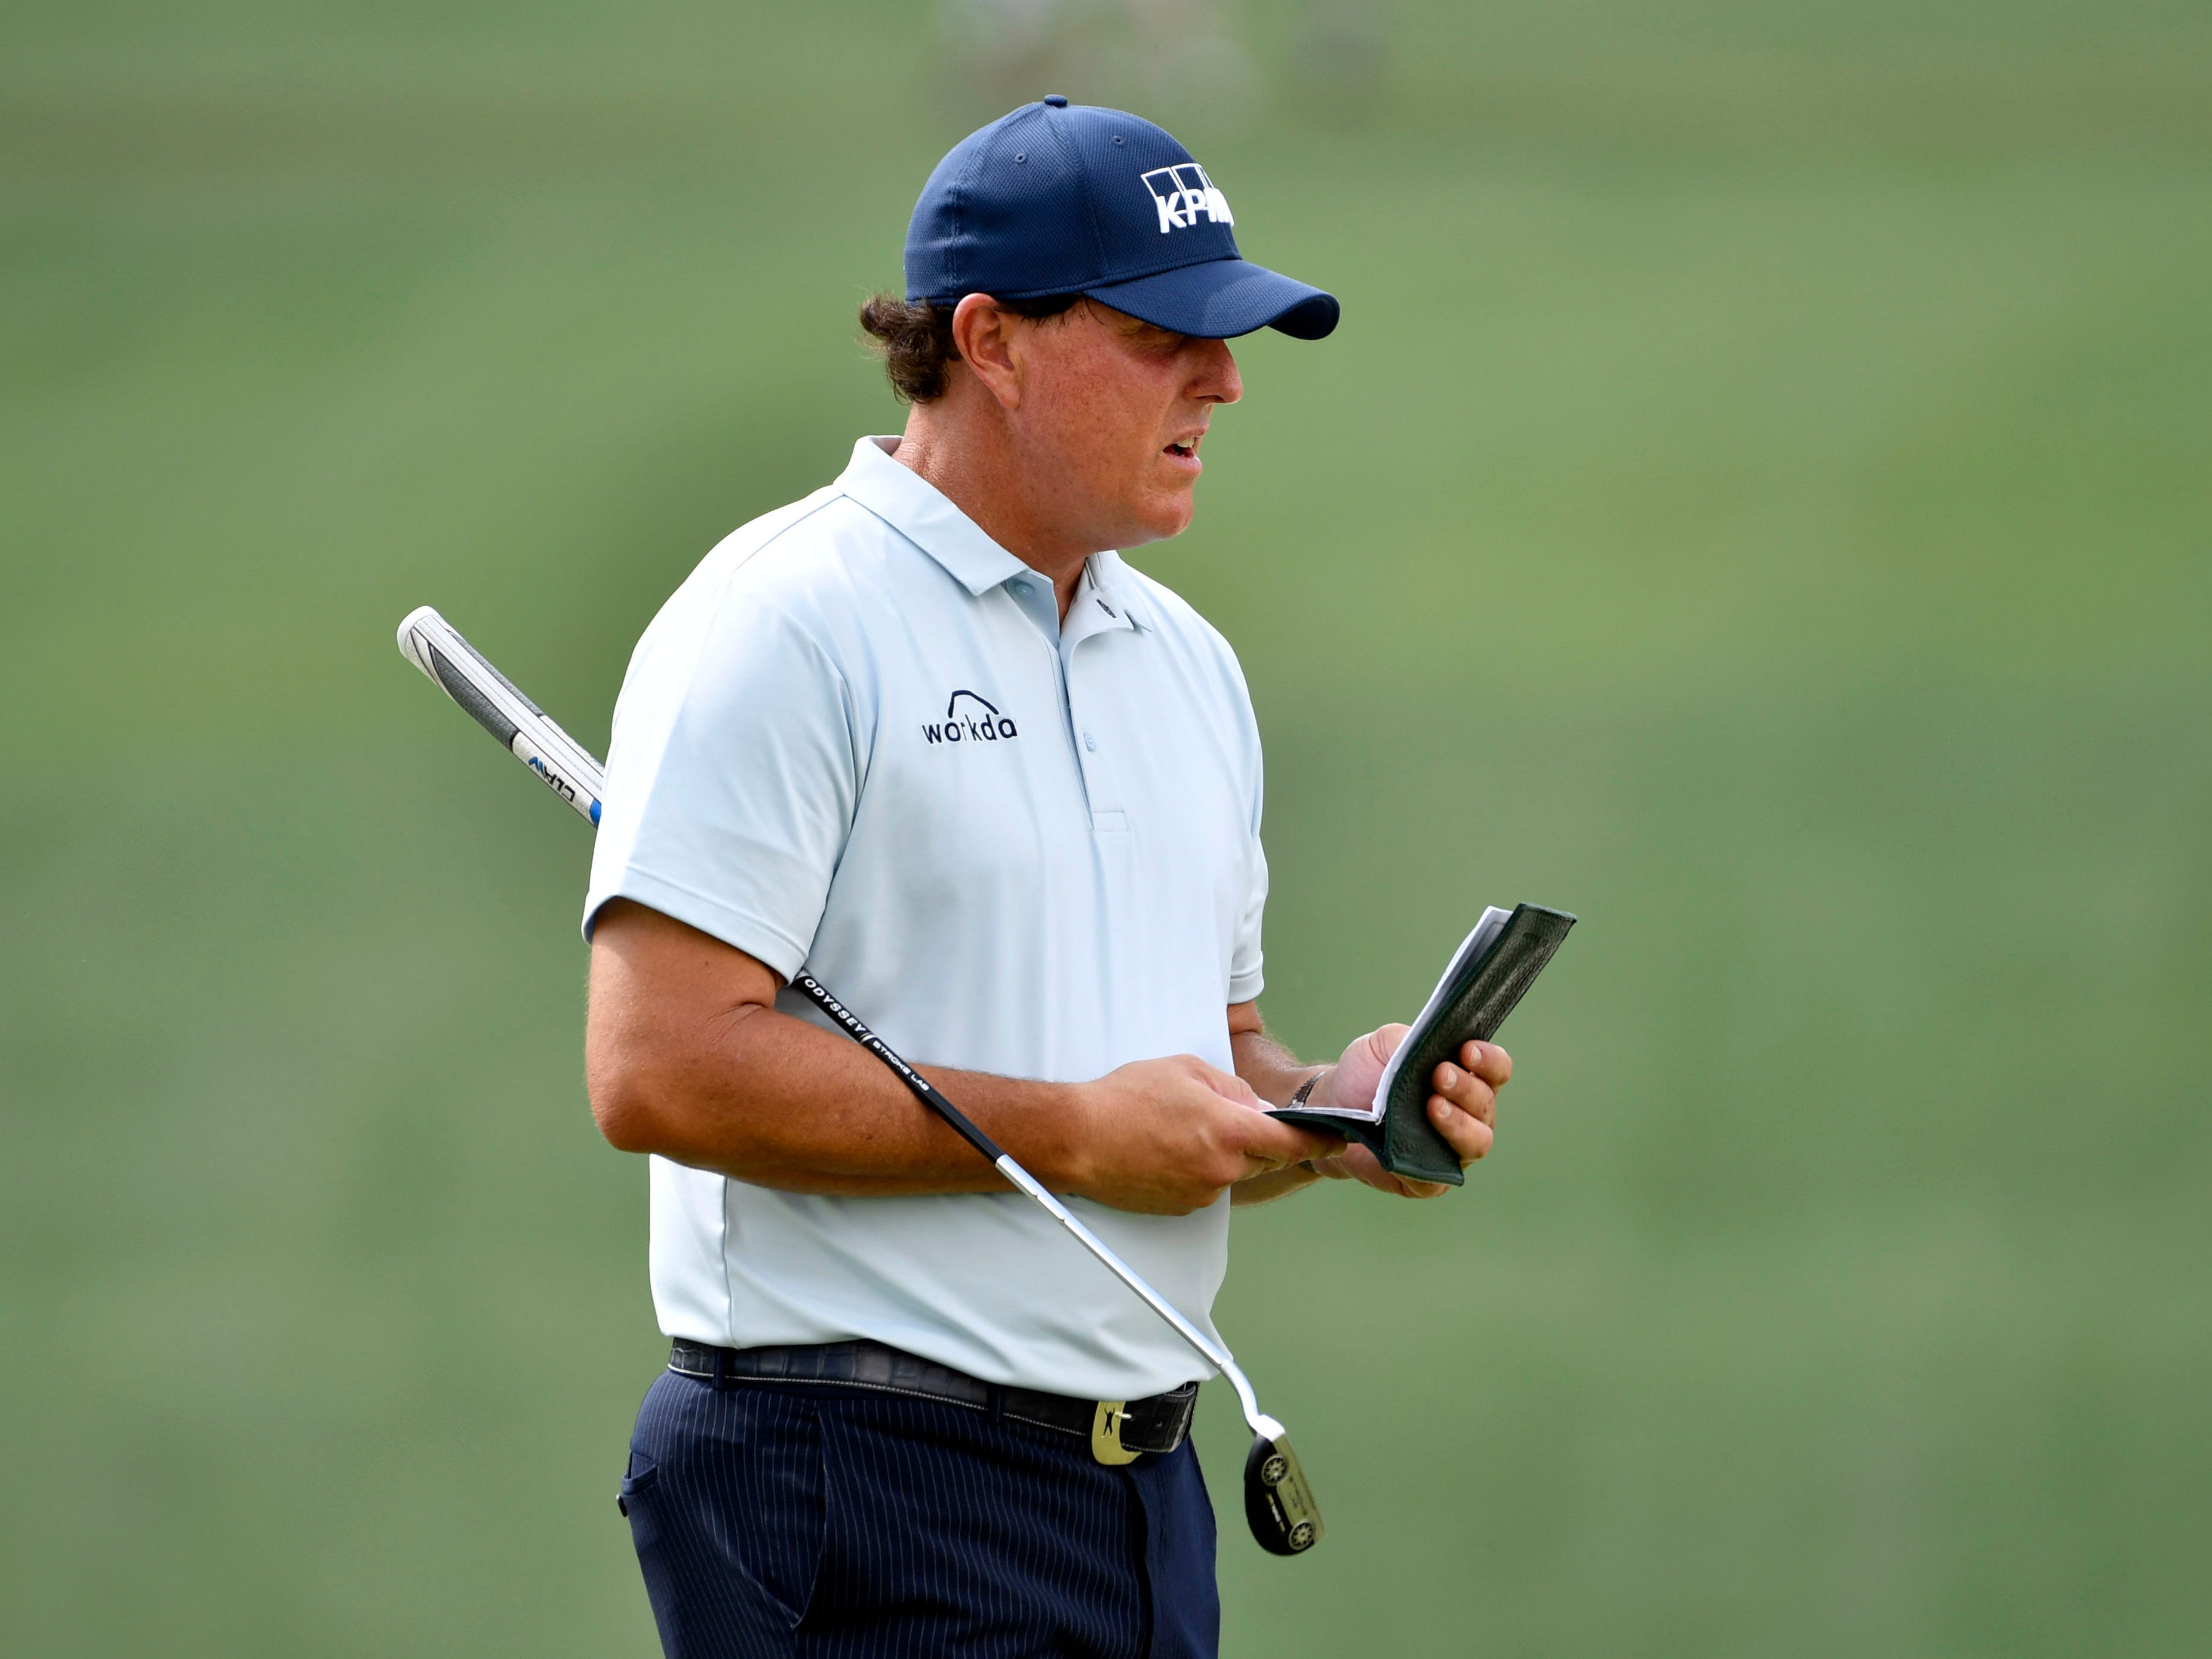 Apr 11, 2019; Augusta, GA, USA; Phil Mickelson checks his yardage book on the 7th green during the first round of The Masters golf tournament at Augusta National Golf Club.